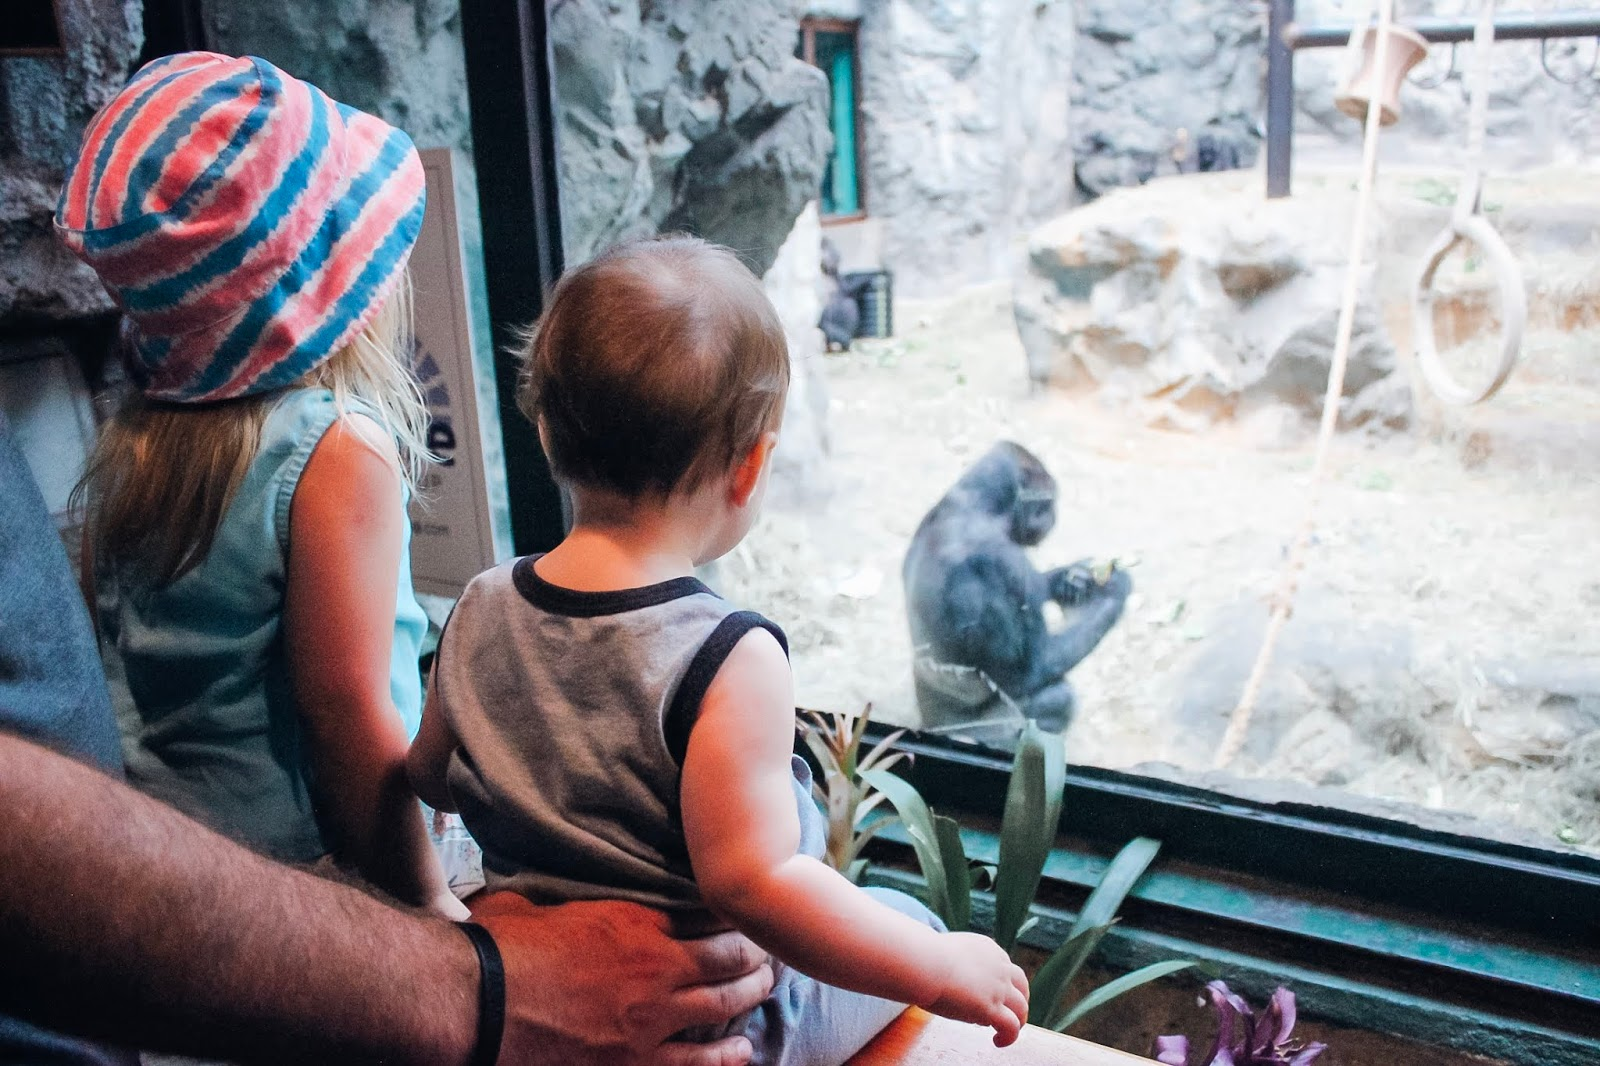 kids looking at gorillas at Buffalo Zoo